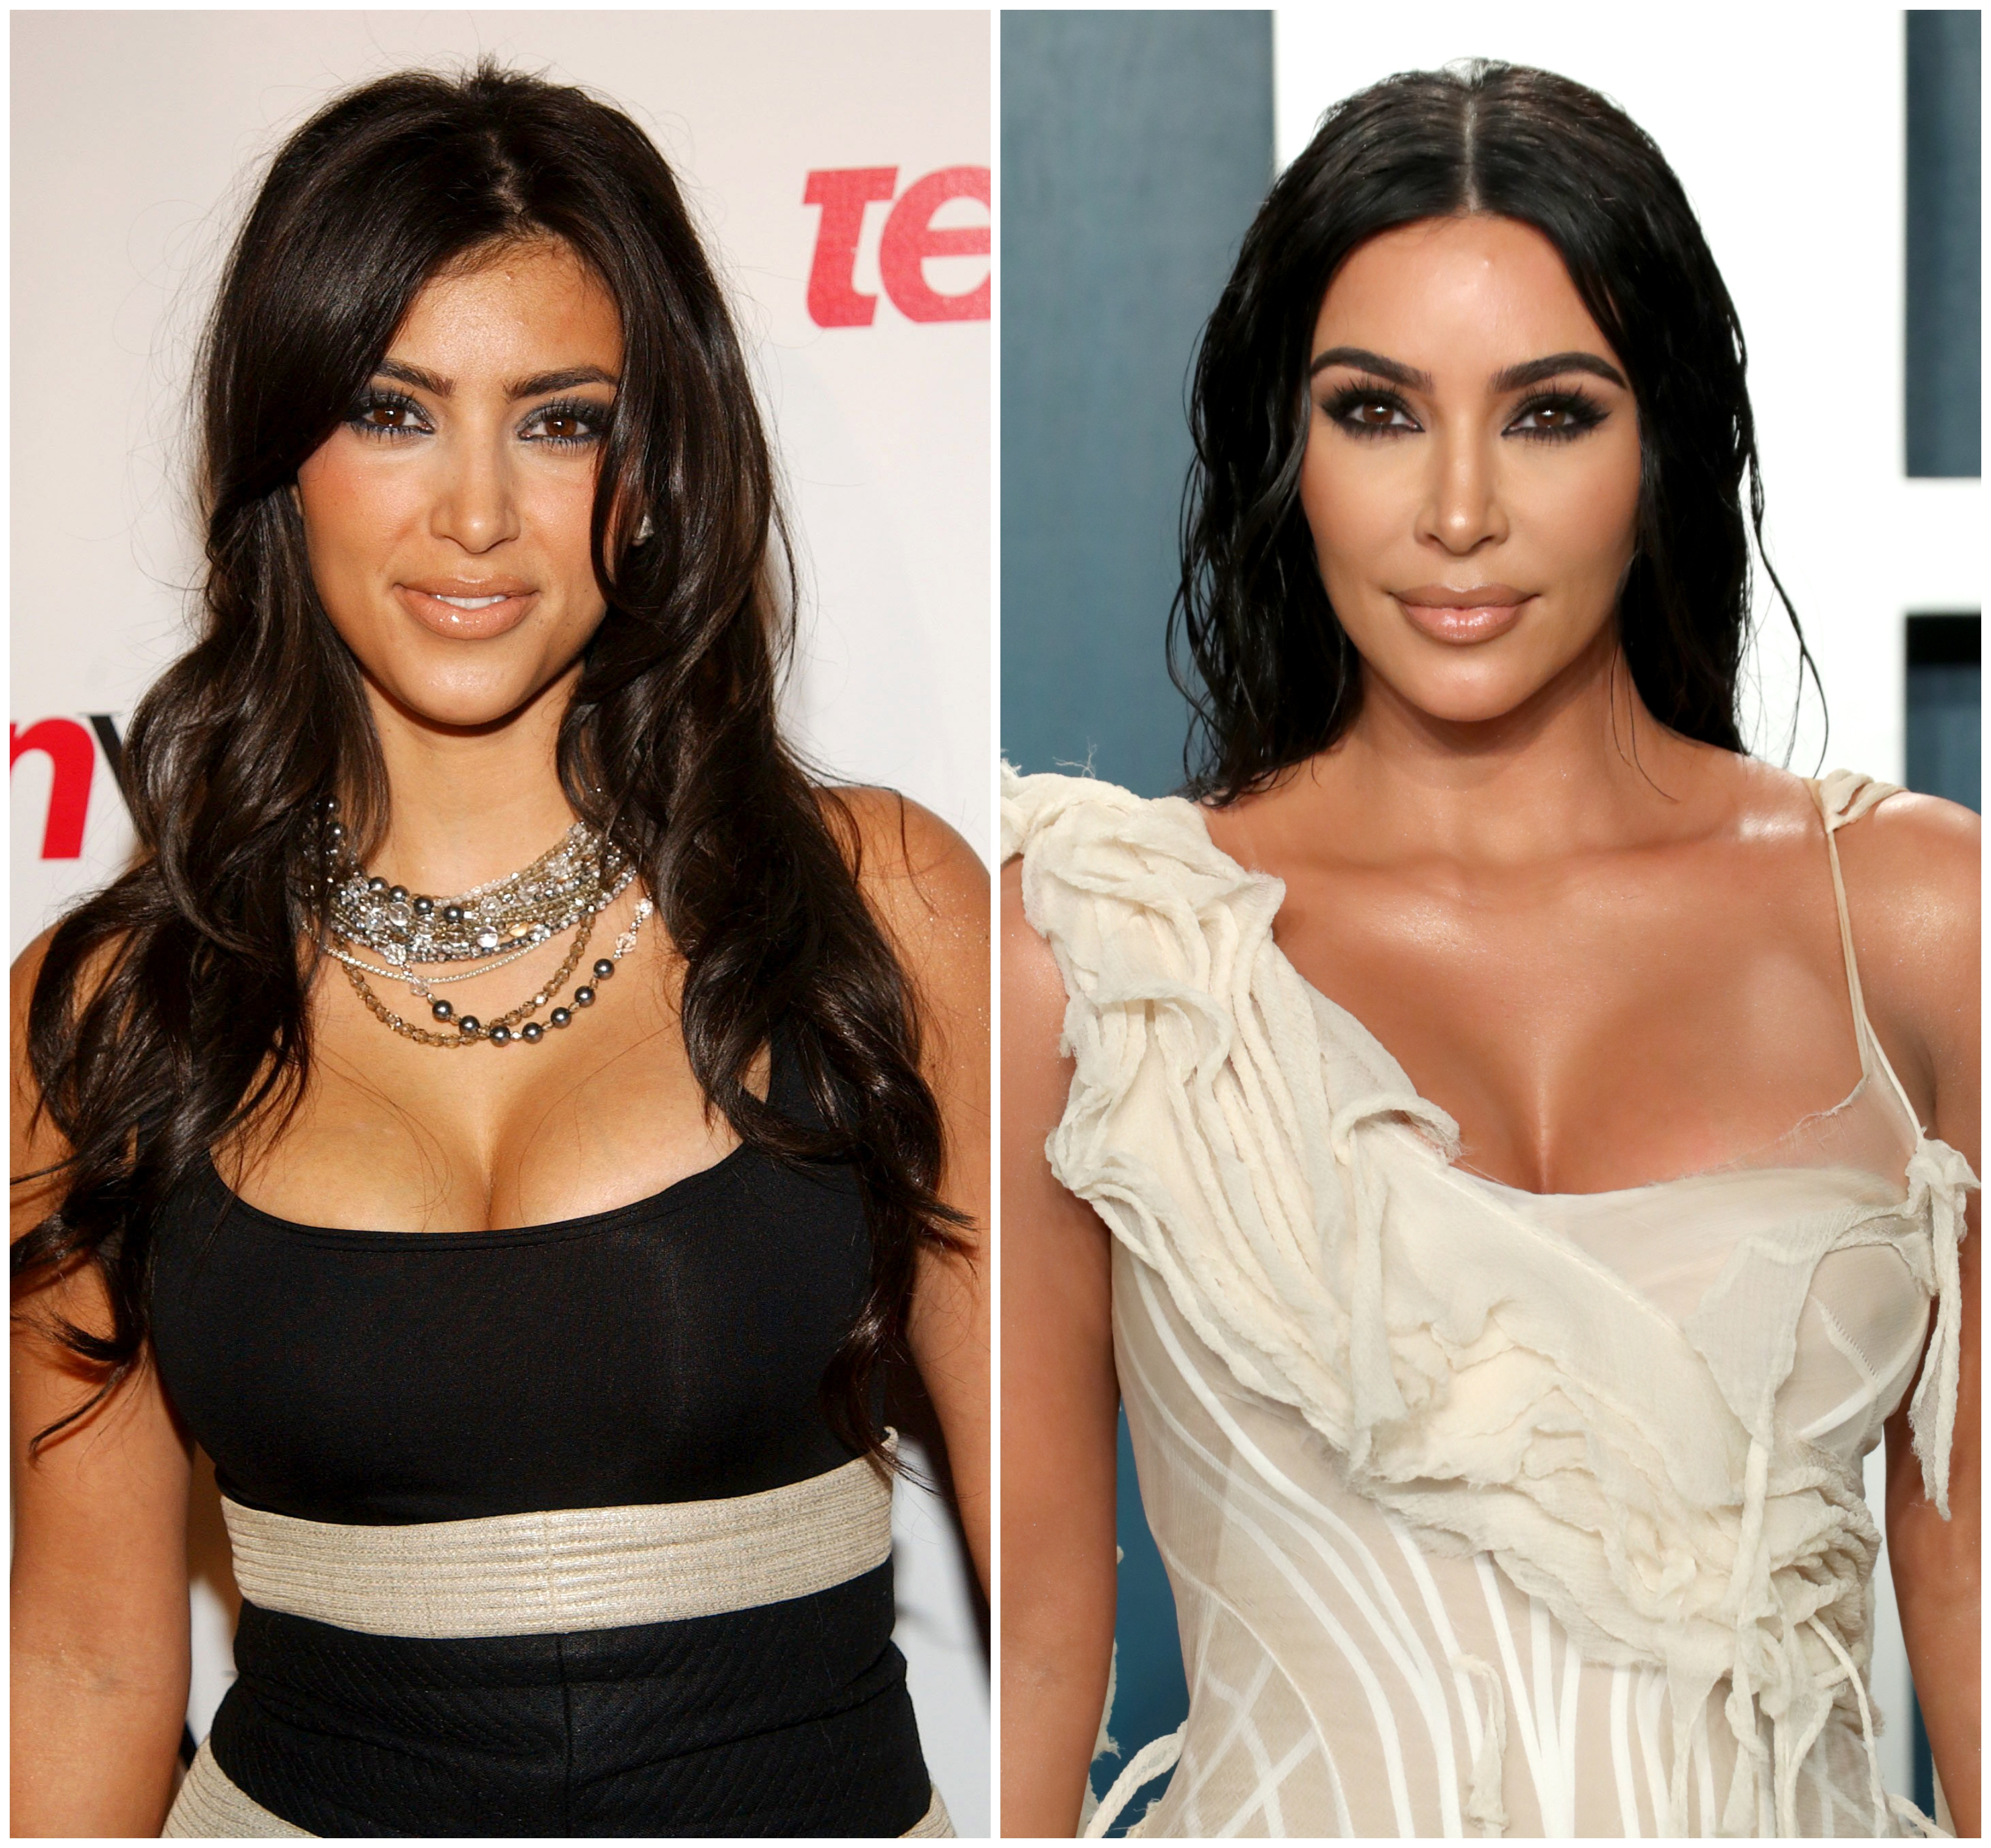 Kim Kardashian Before And After: Plastic Surgery Timeline